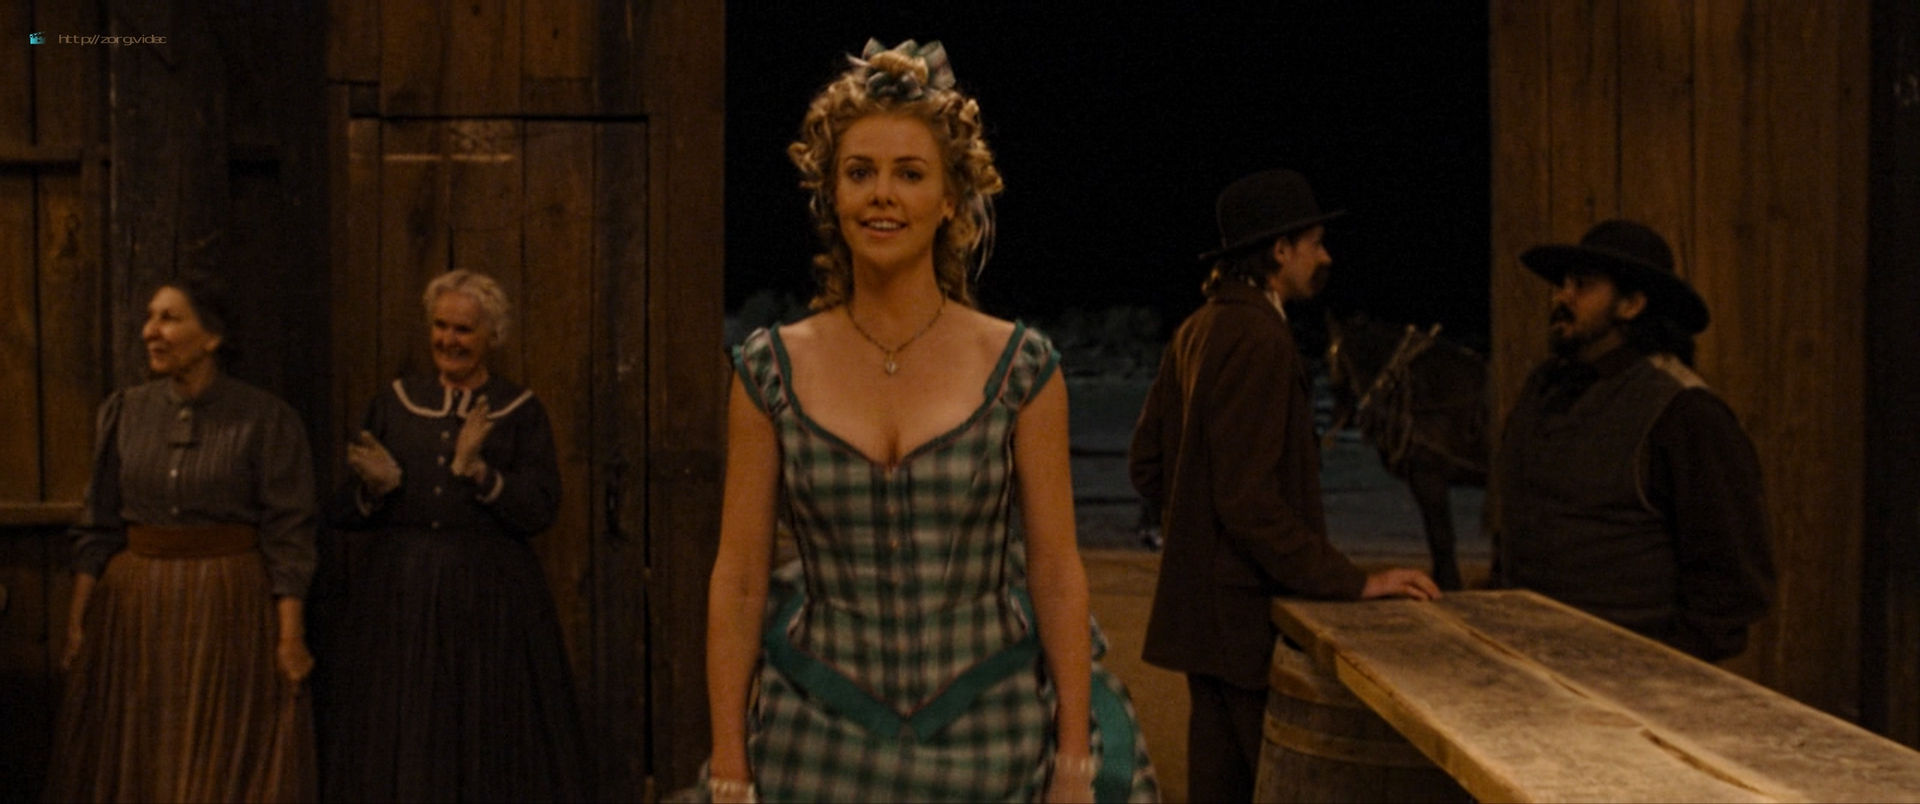 Charlize Theron sexy Amanda Seyfried and Sarah Silverman hot - A Million Ways to Die in the West (2014) HD 1080p BluRay (11)